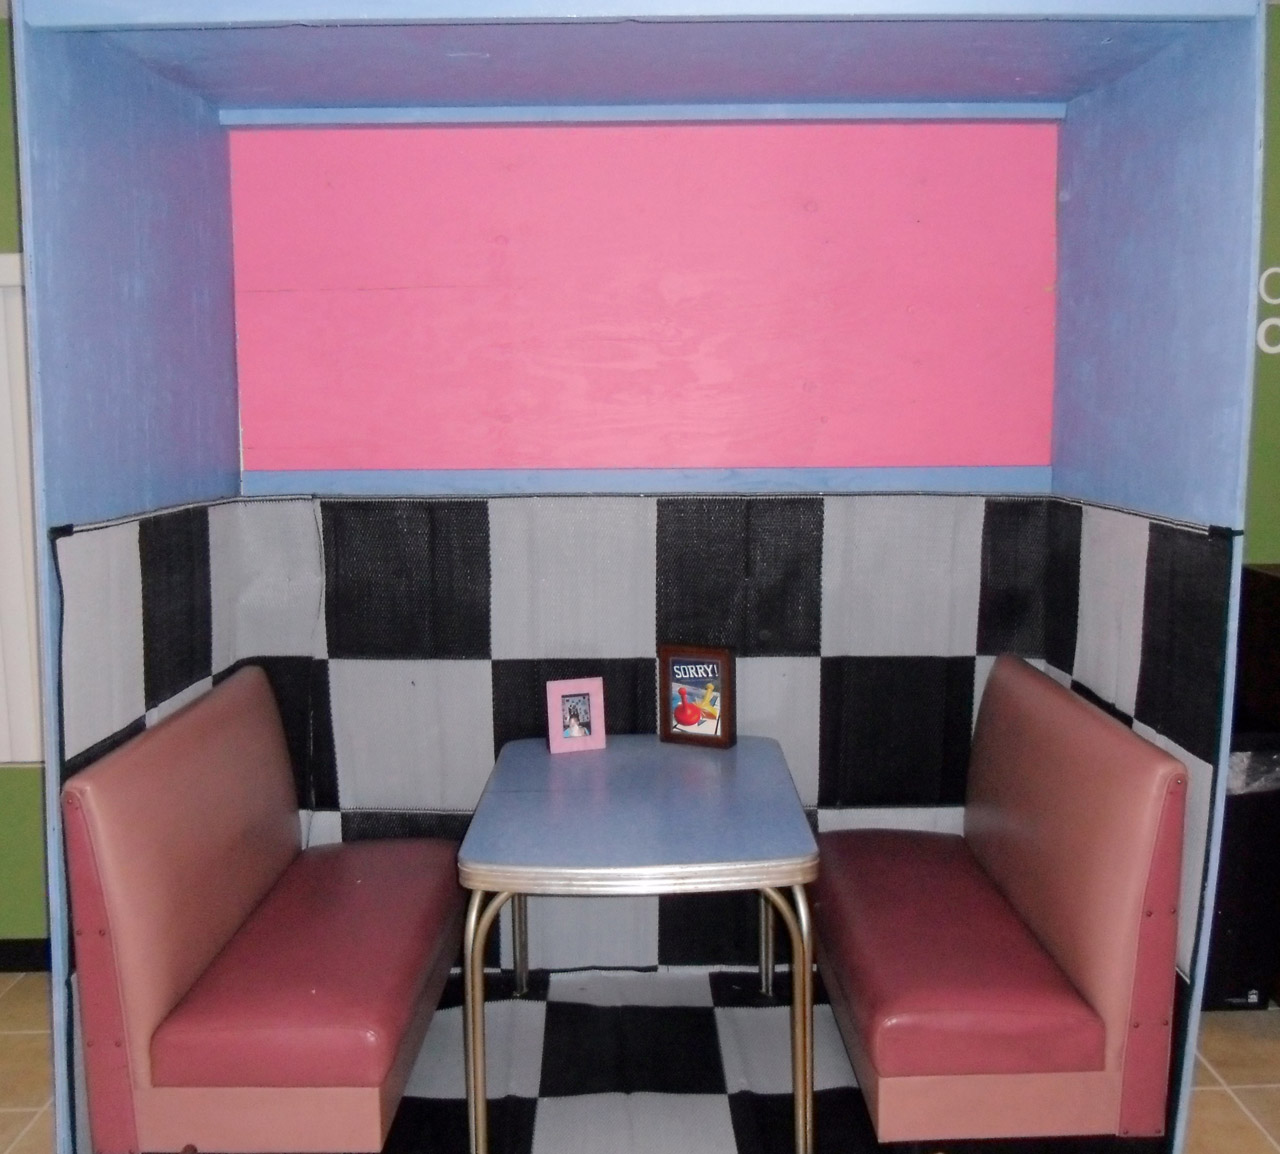 Download Free Photo Of 50 S 60 S Diner Booth Pink From Needpix Com